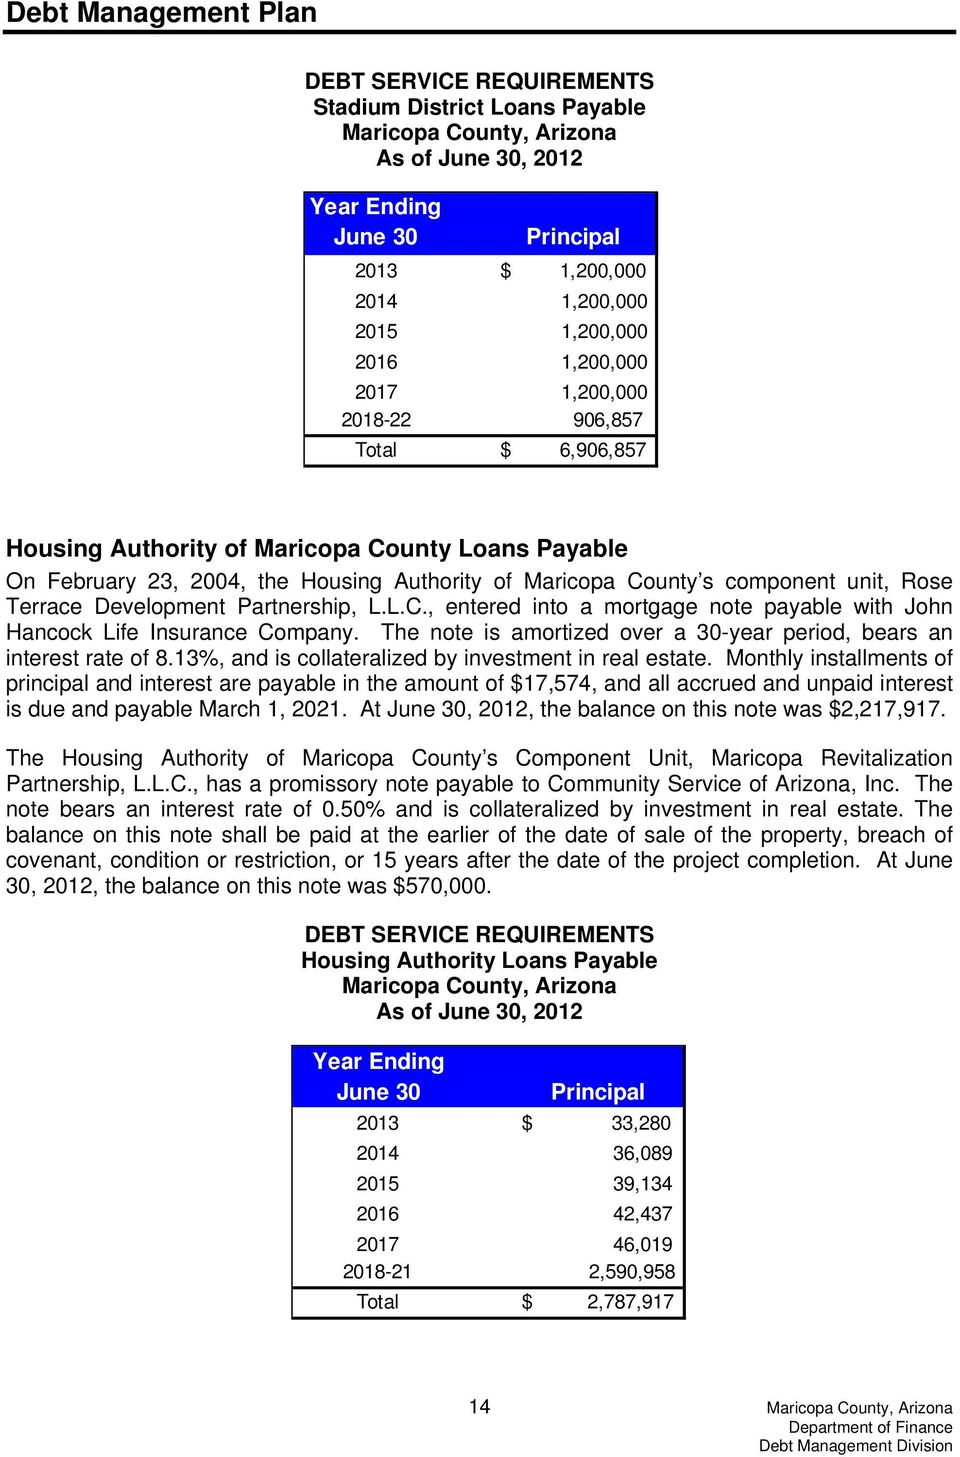 Development Partnership, L.L.C., entered into a mortgage note payable with John Hancock Life Insurance Company. The note is amortized over a 30-year period, bears an interest rate of 8.